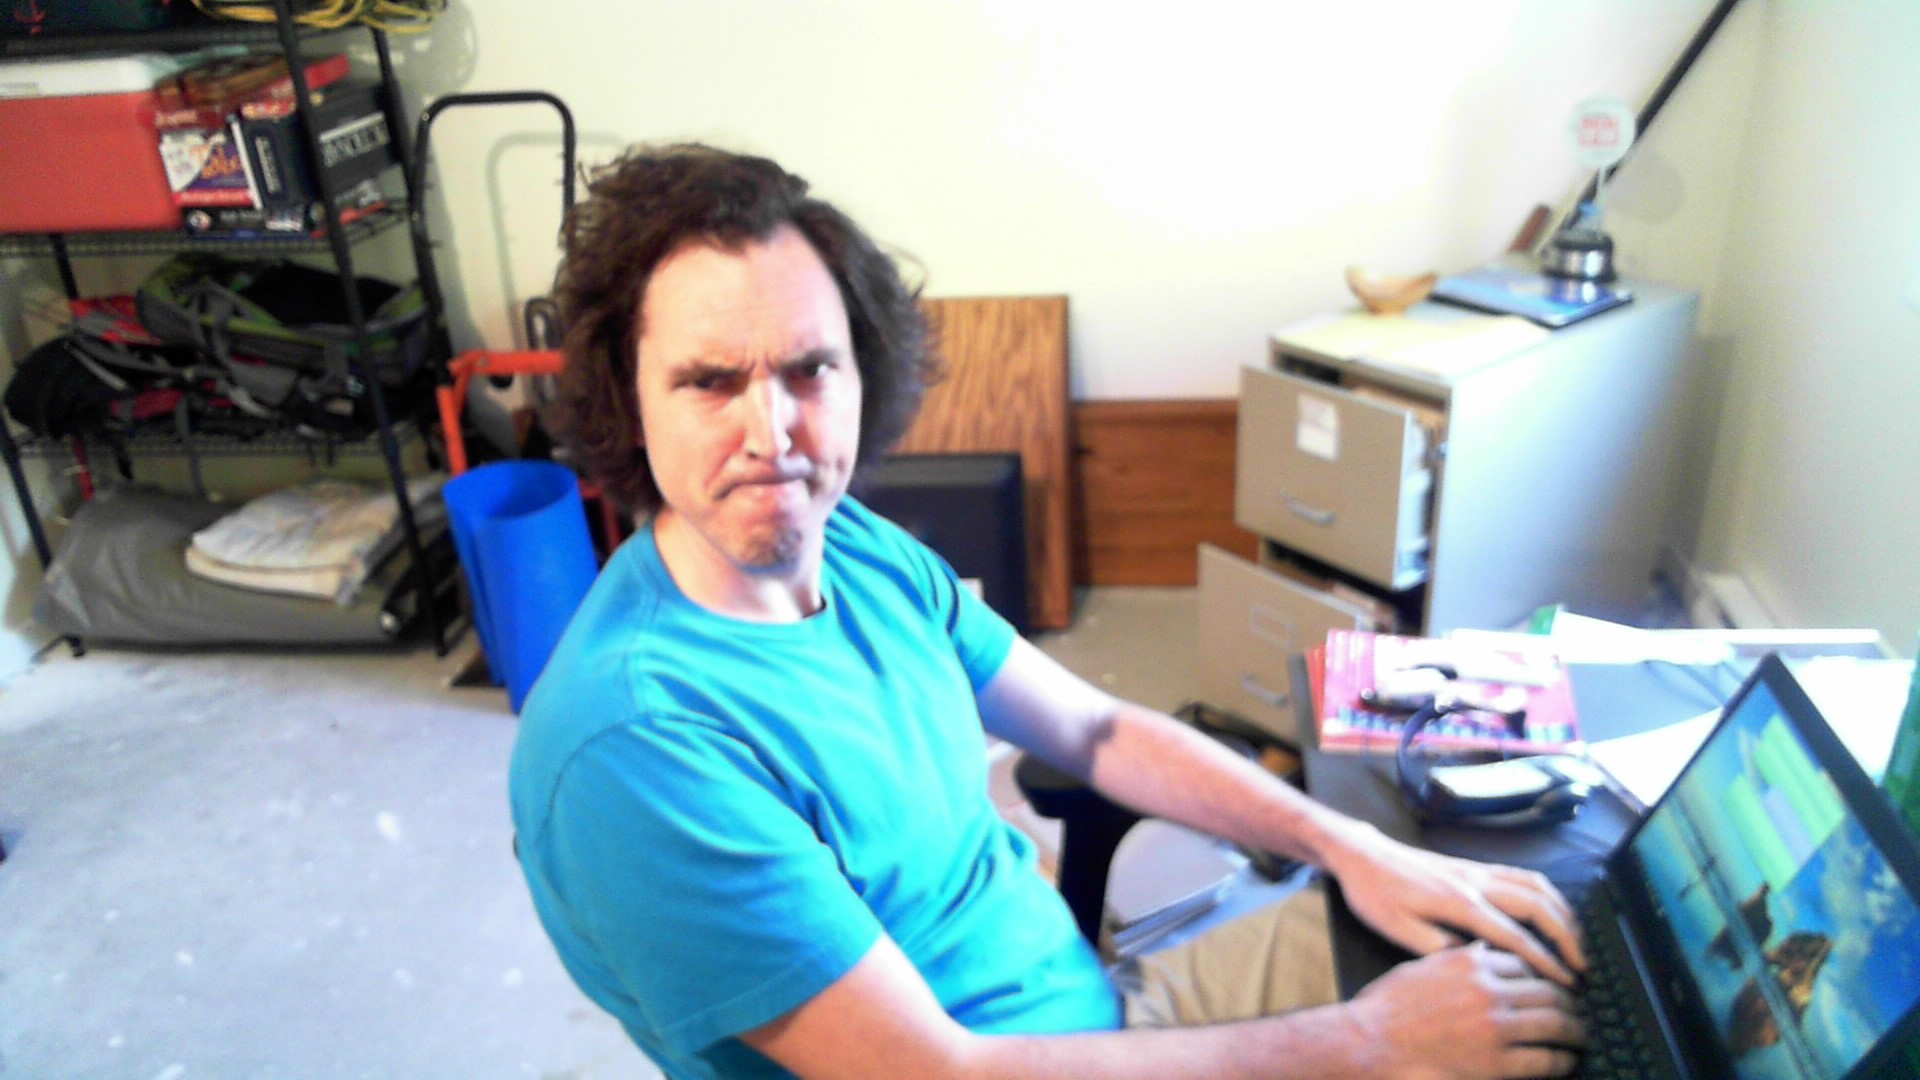 Anger Management for Software Developers